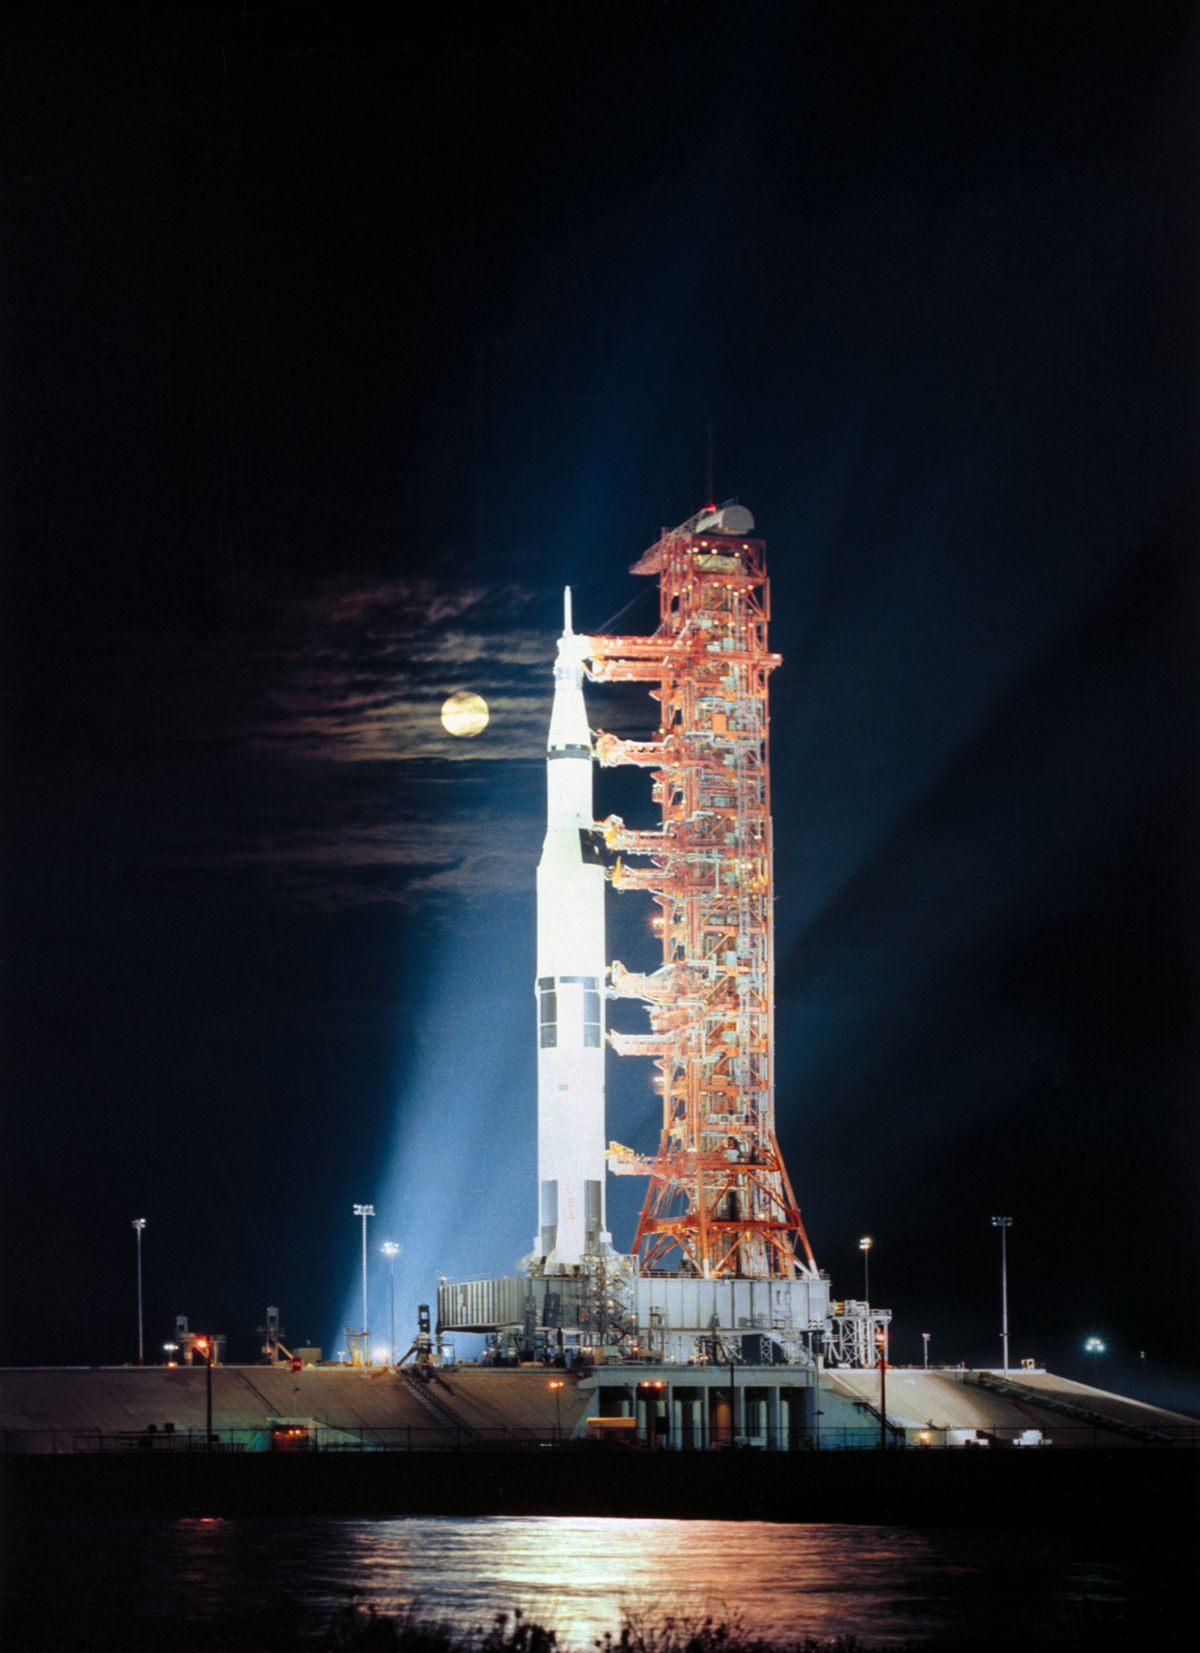 Spacecraft on launchpad with full moon in background